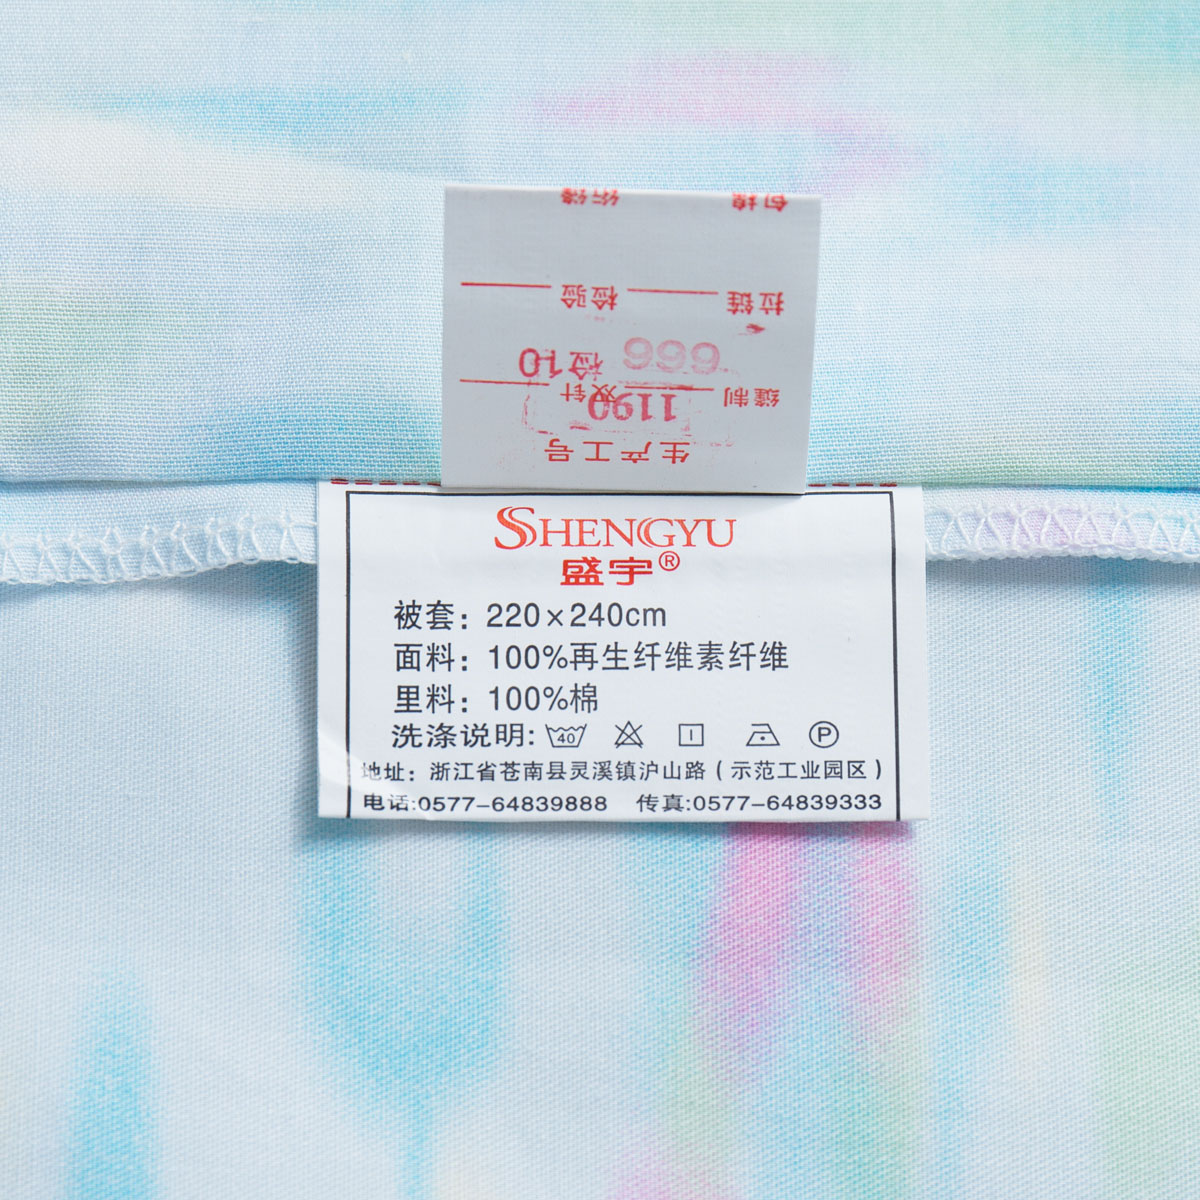 Sheng Yu textile four sets of genuine double-sided printed sheets of Tencel 1.8m four piece bedding new special offer